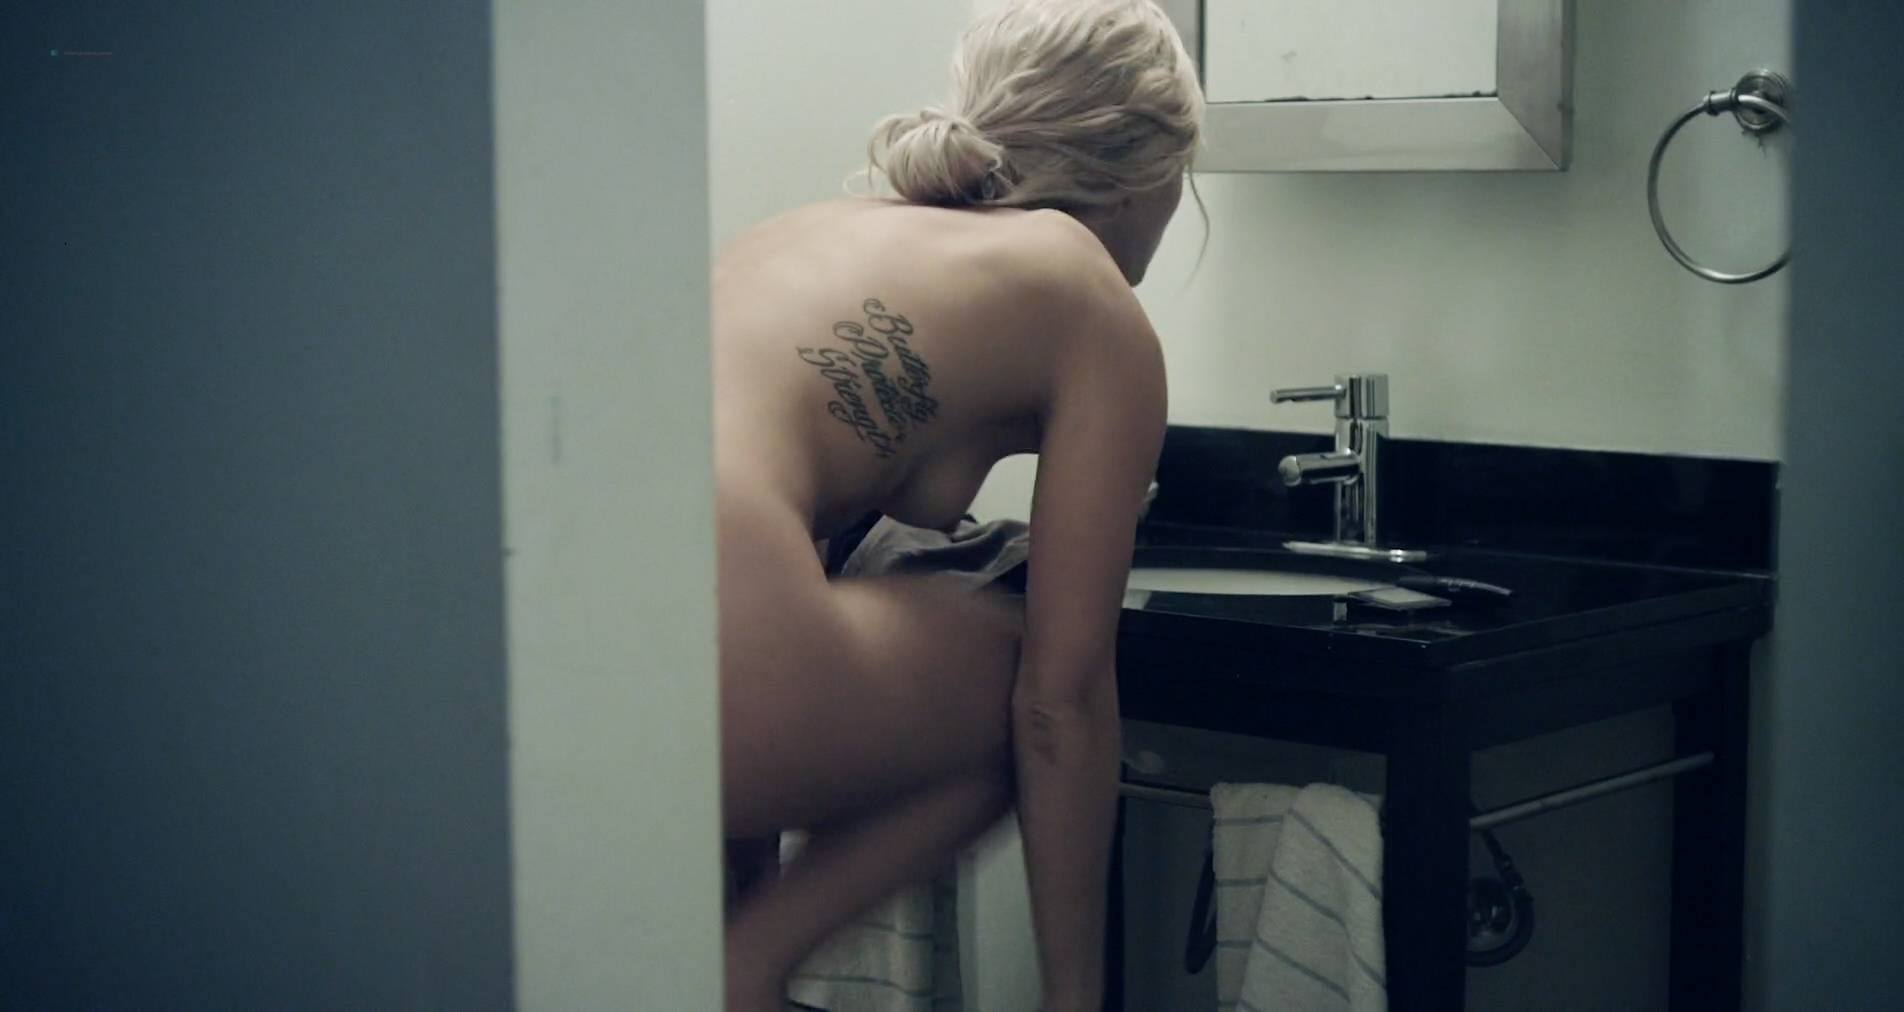 briana-evigan-naked-butt-and-pussy-russian-family-sex